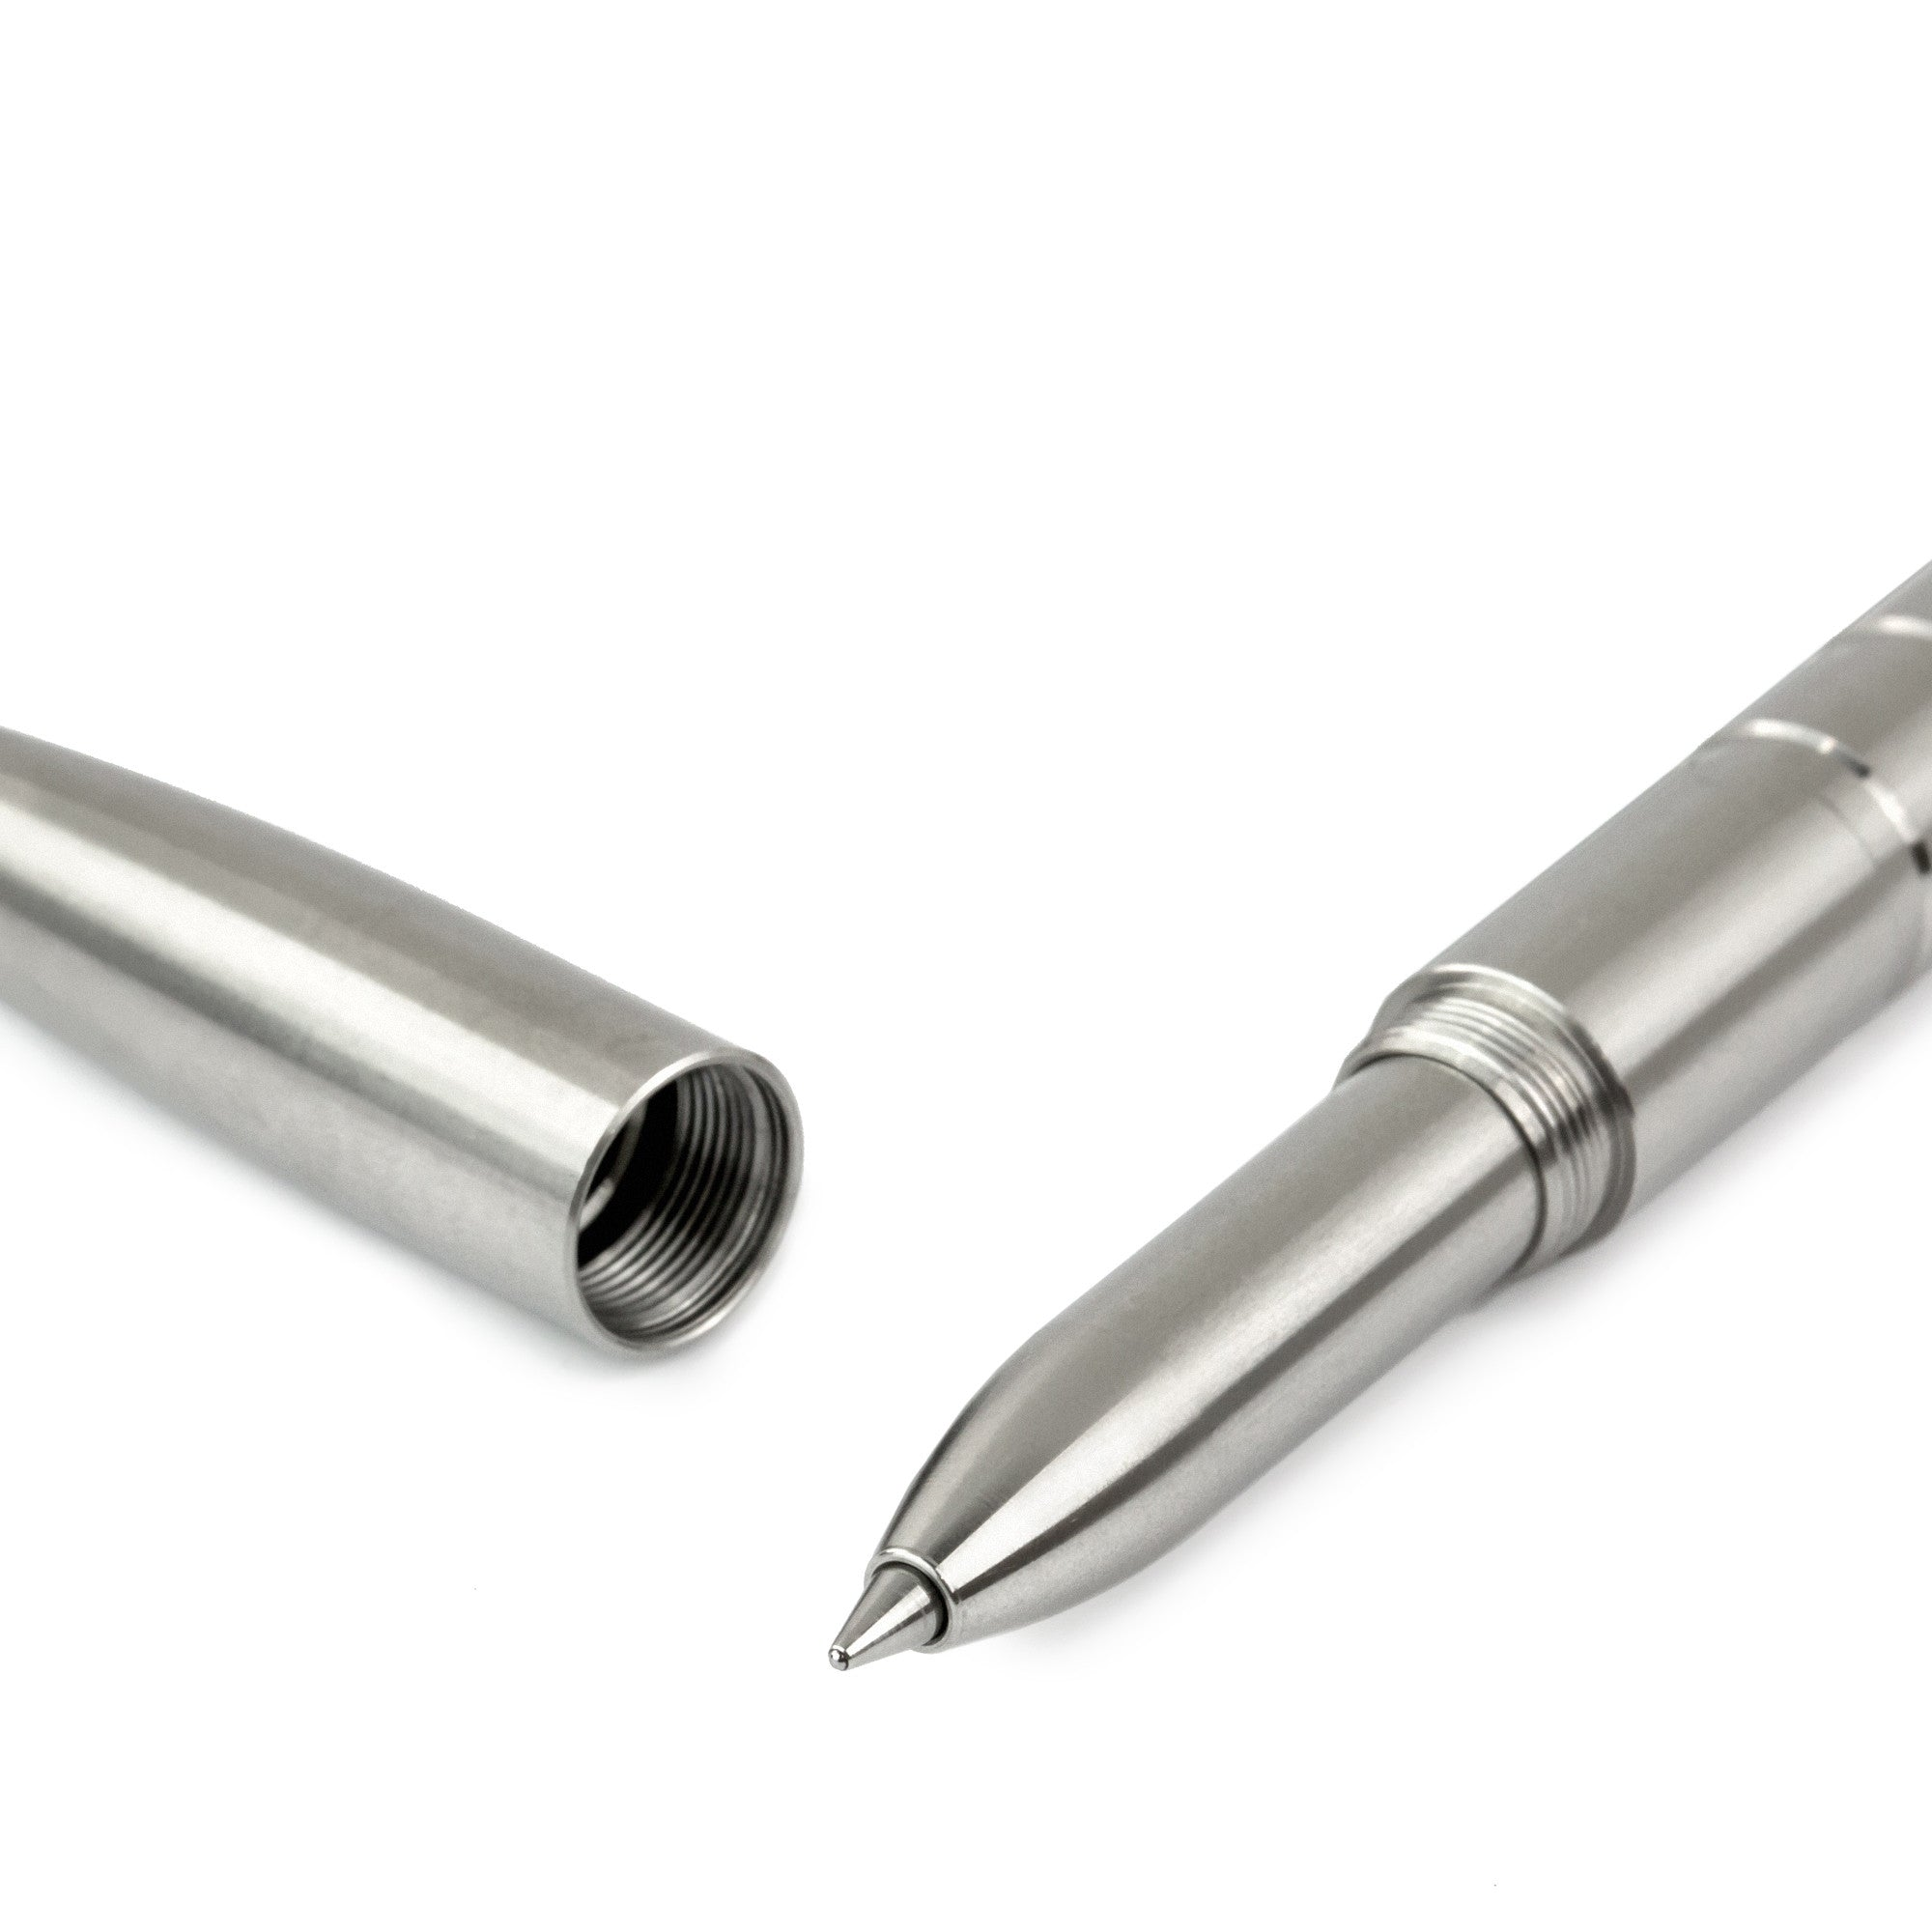 Machine Era Pen | Stainless Steel